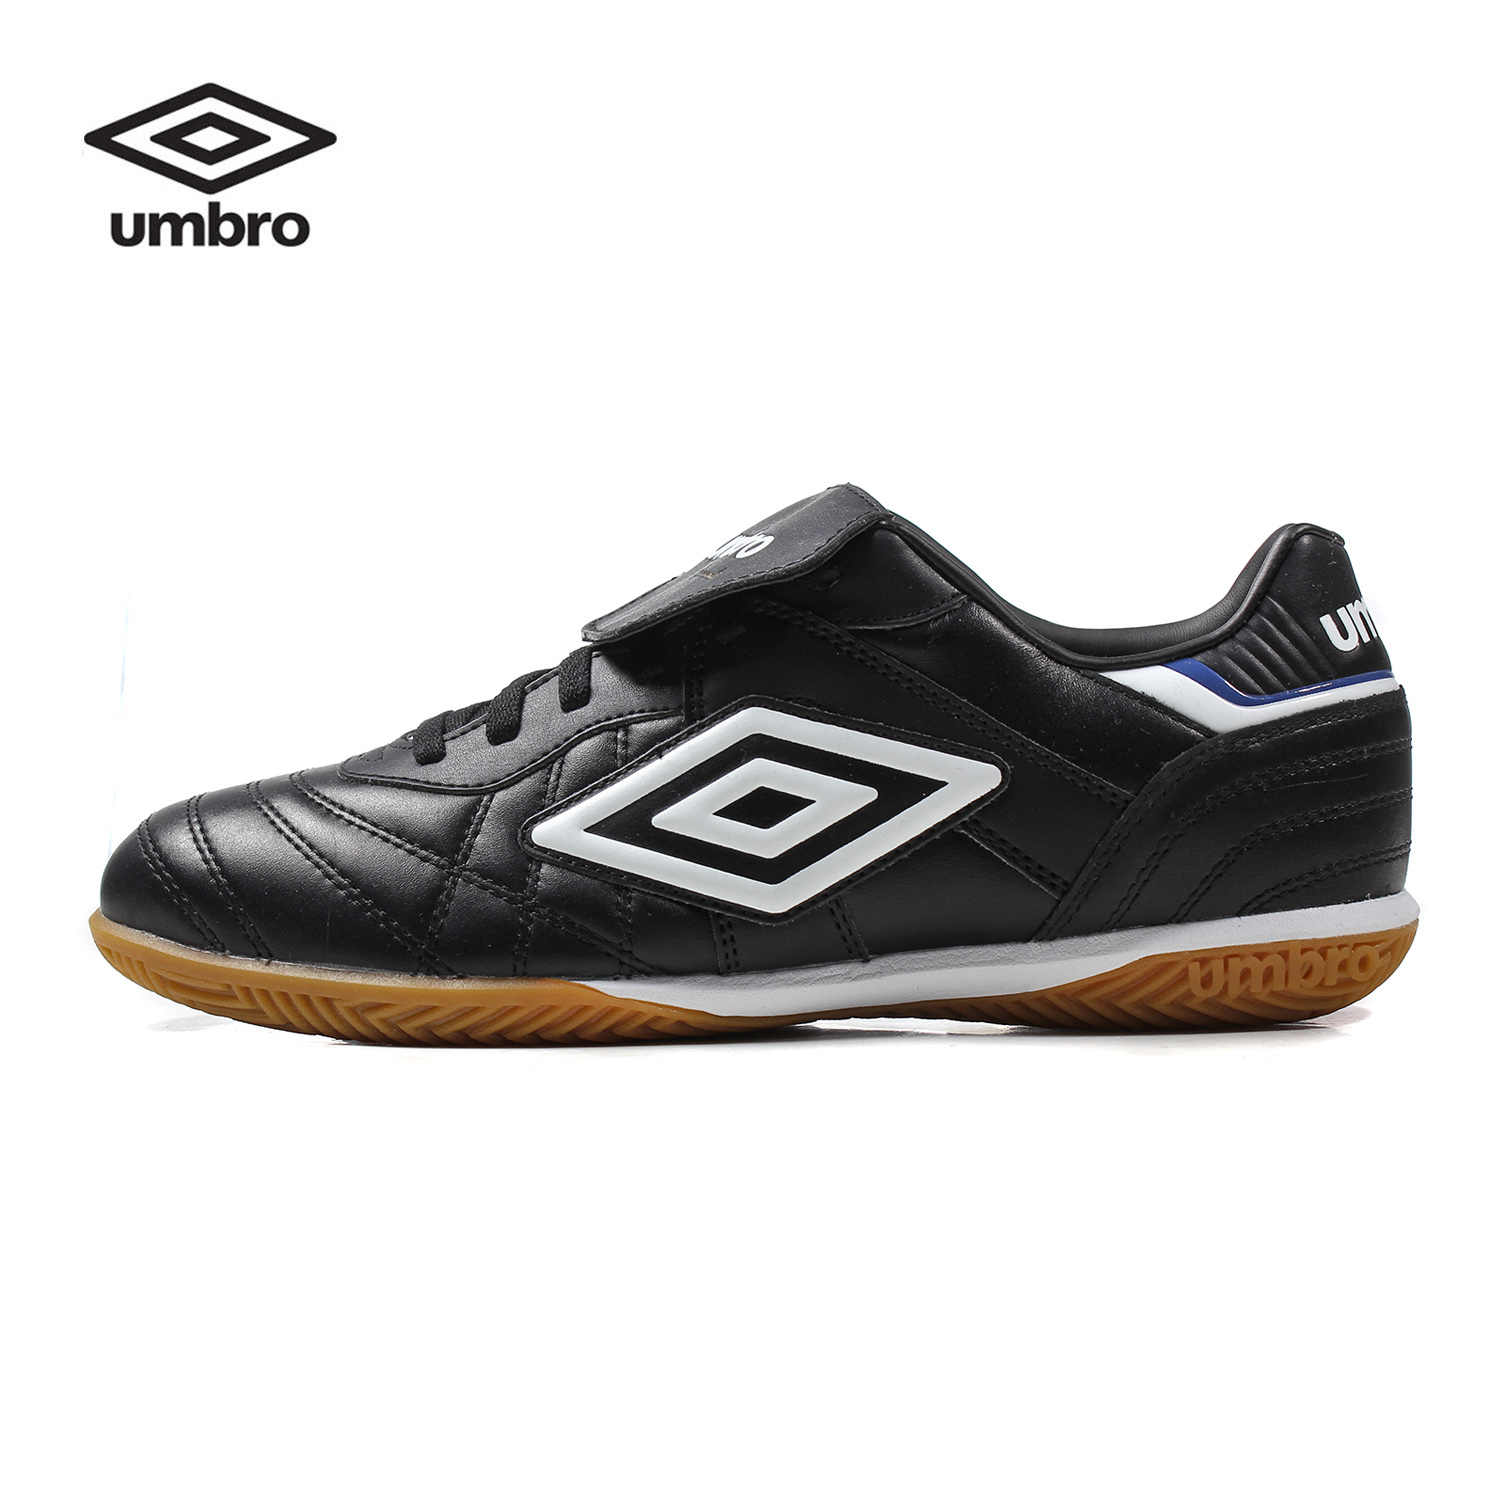 19b92963a Detail Feedback Questions about Umbro Men Soccer Shoes Sports Sneaker Indoor  Soccer Boots Turf Shoes Leather Lace up Professional Football Shoes  UCB90115 on ...